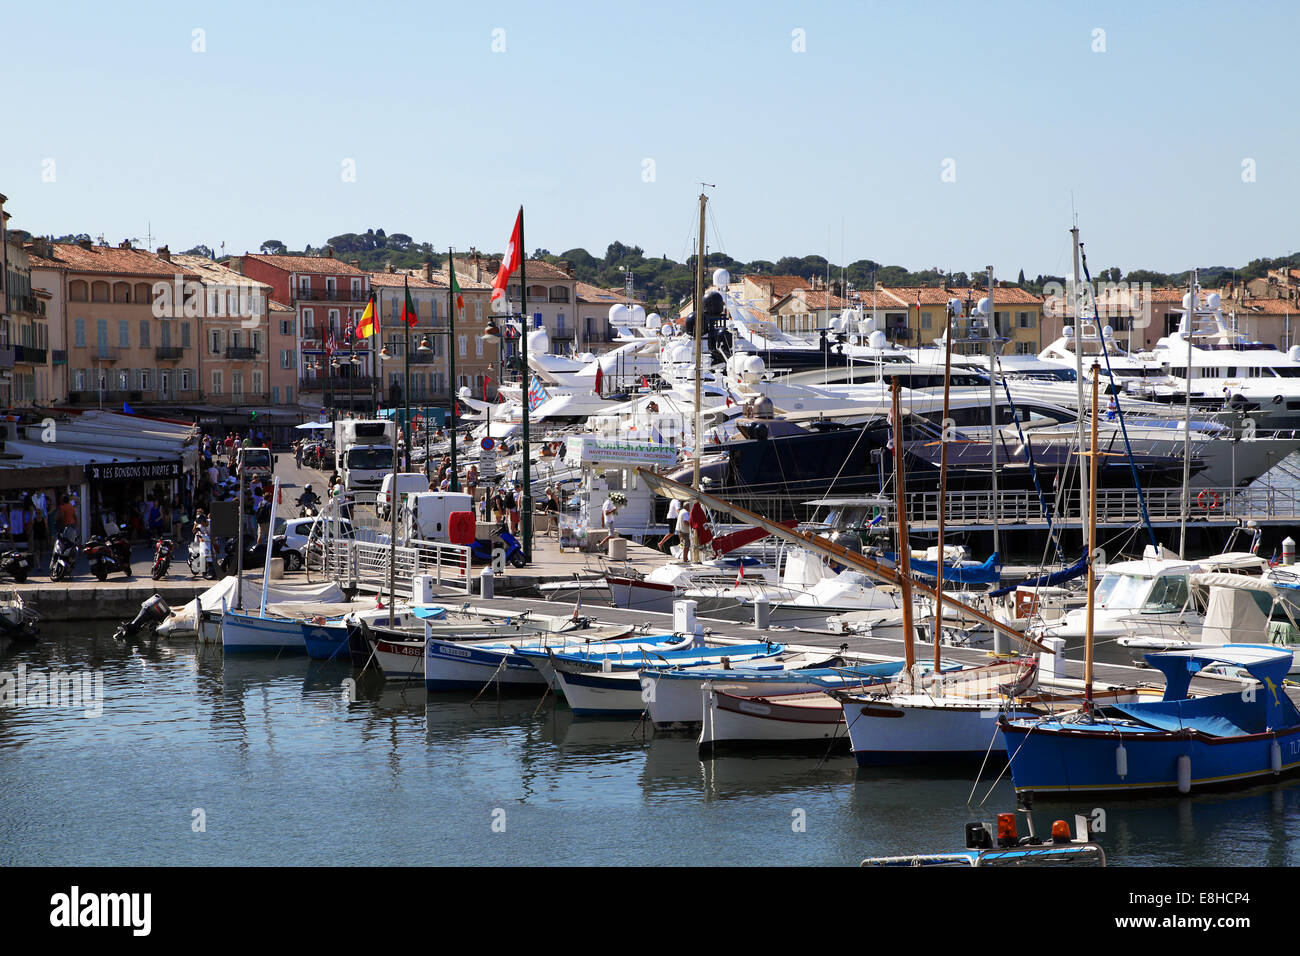 saint tropez stockfotos saint tropez bilder alamy. Black Bedroom Furniture Sets. Home Design Ideas